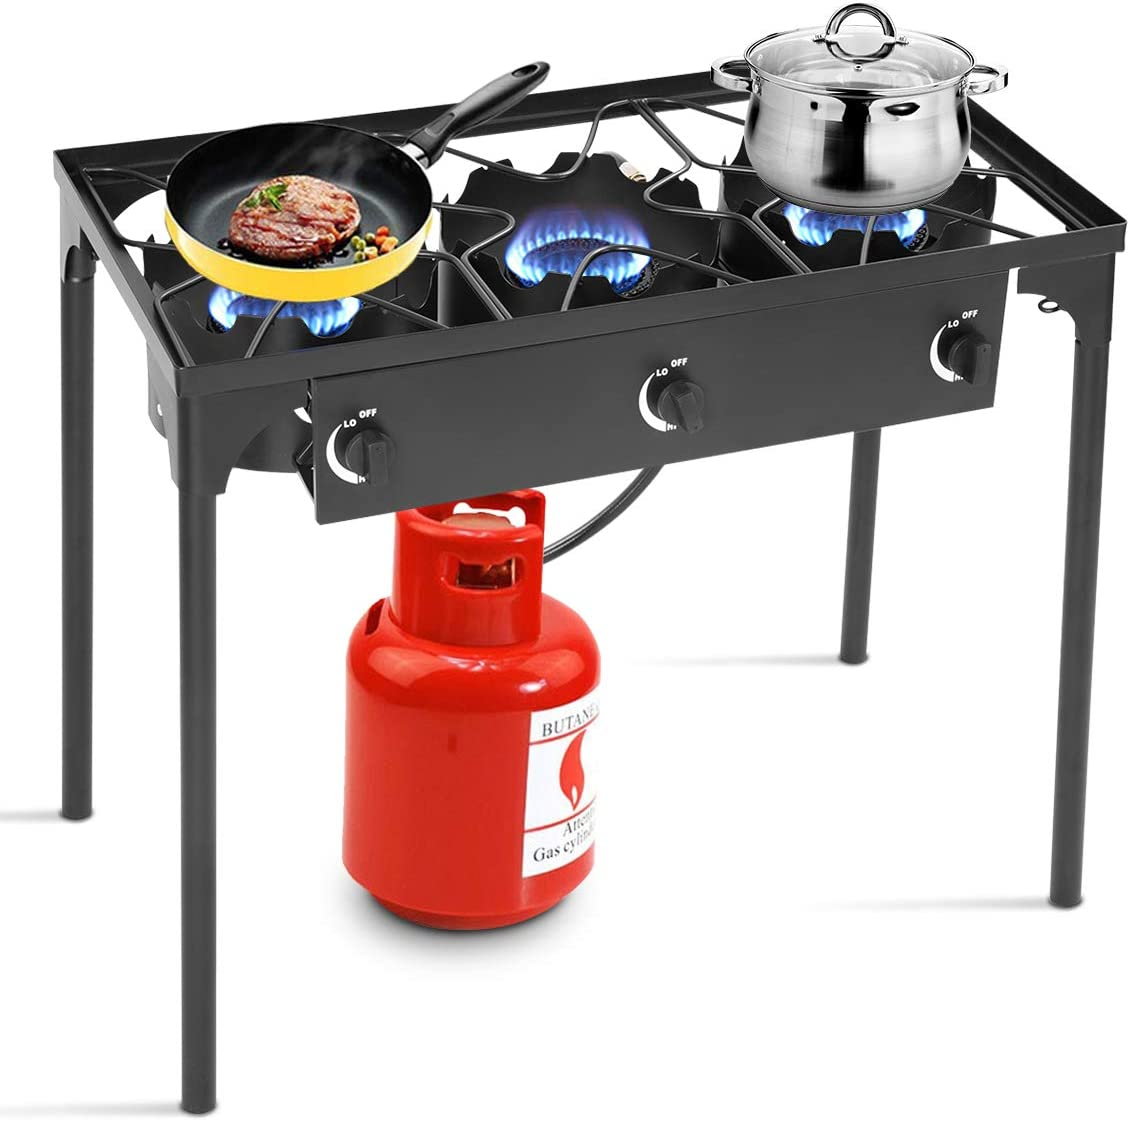 Outdoor Gas Boiling Ring Cast Iron Burner Camping Cooking Stove BBQ Gas Burners